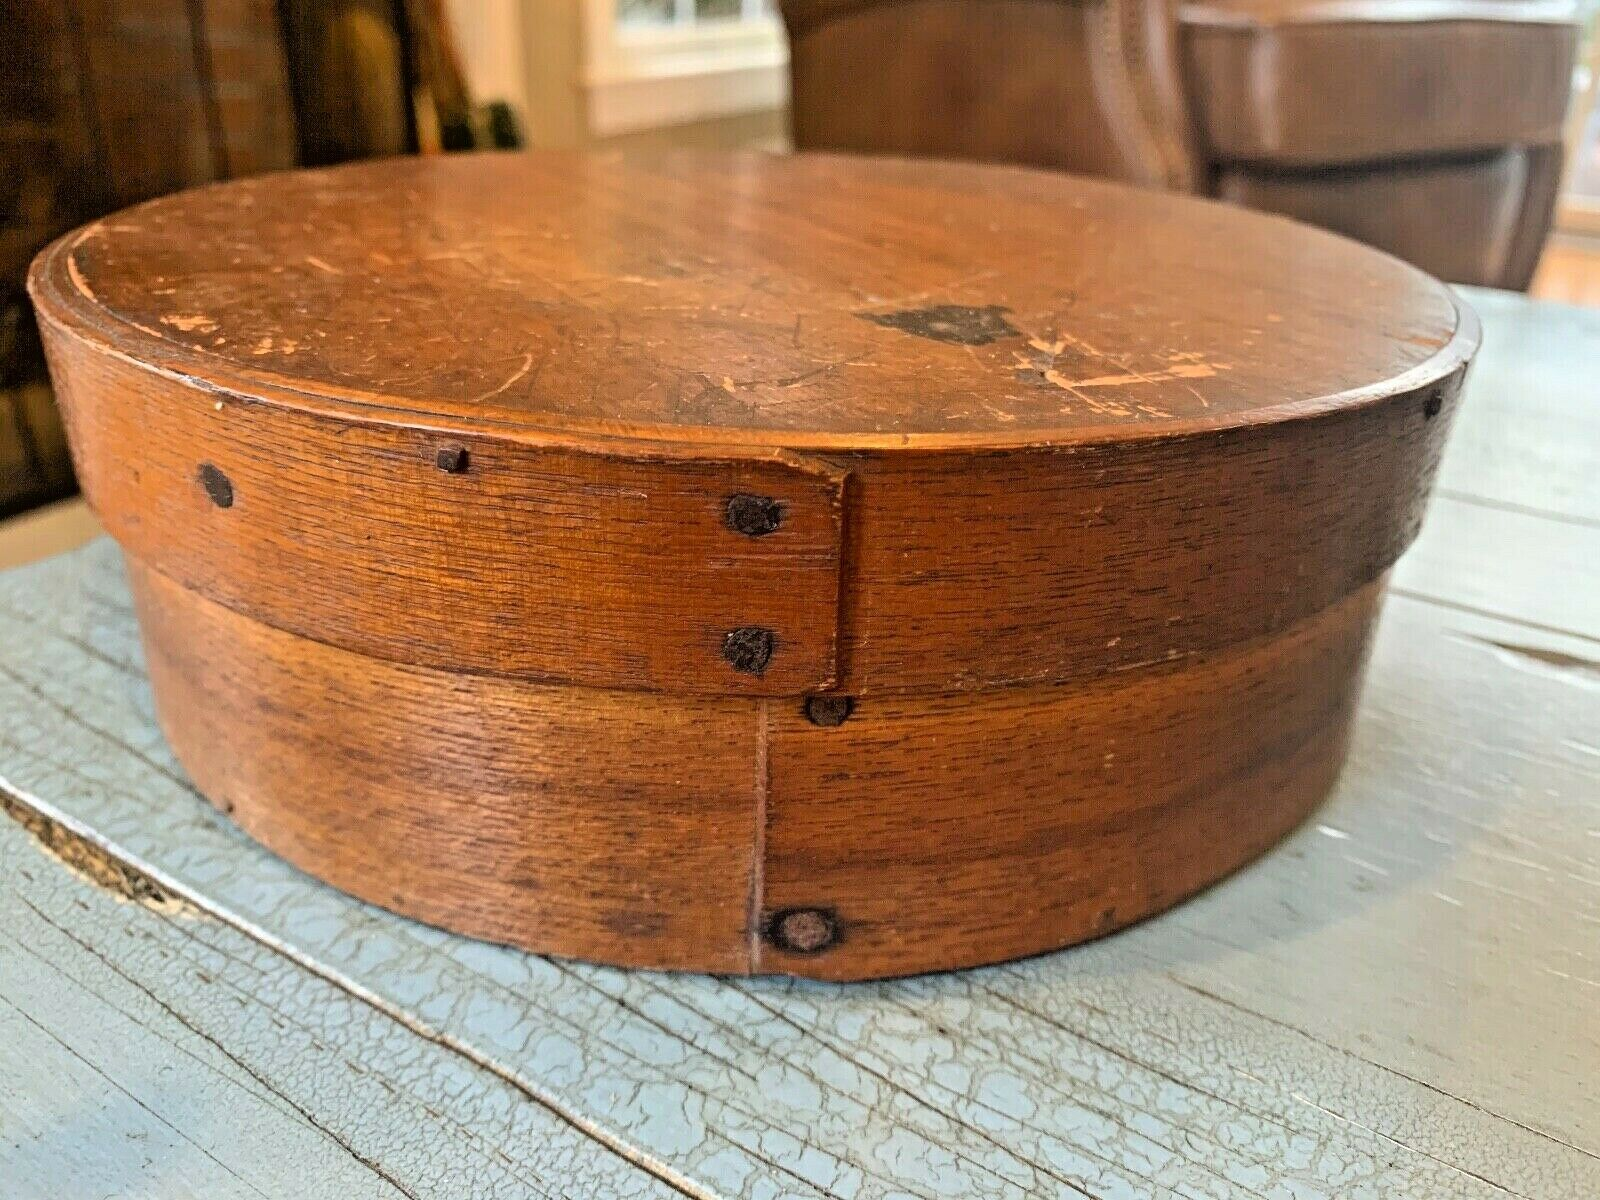 Rare Antique Pantry Box Grain Measure W/ Lid Cheese Wooden Rustic Wood 8 MA  - $49.99